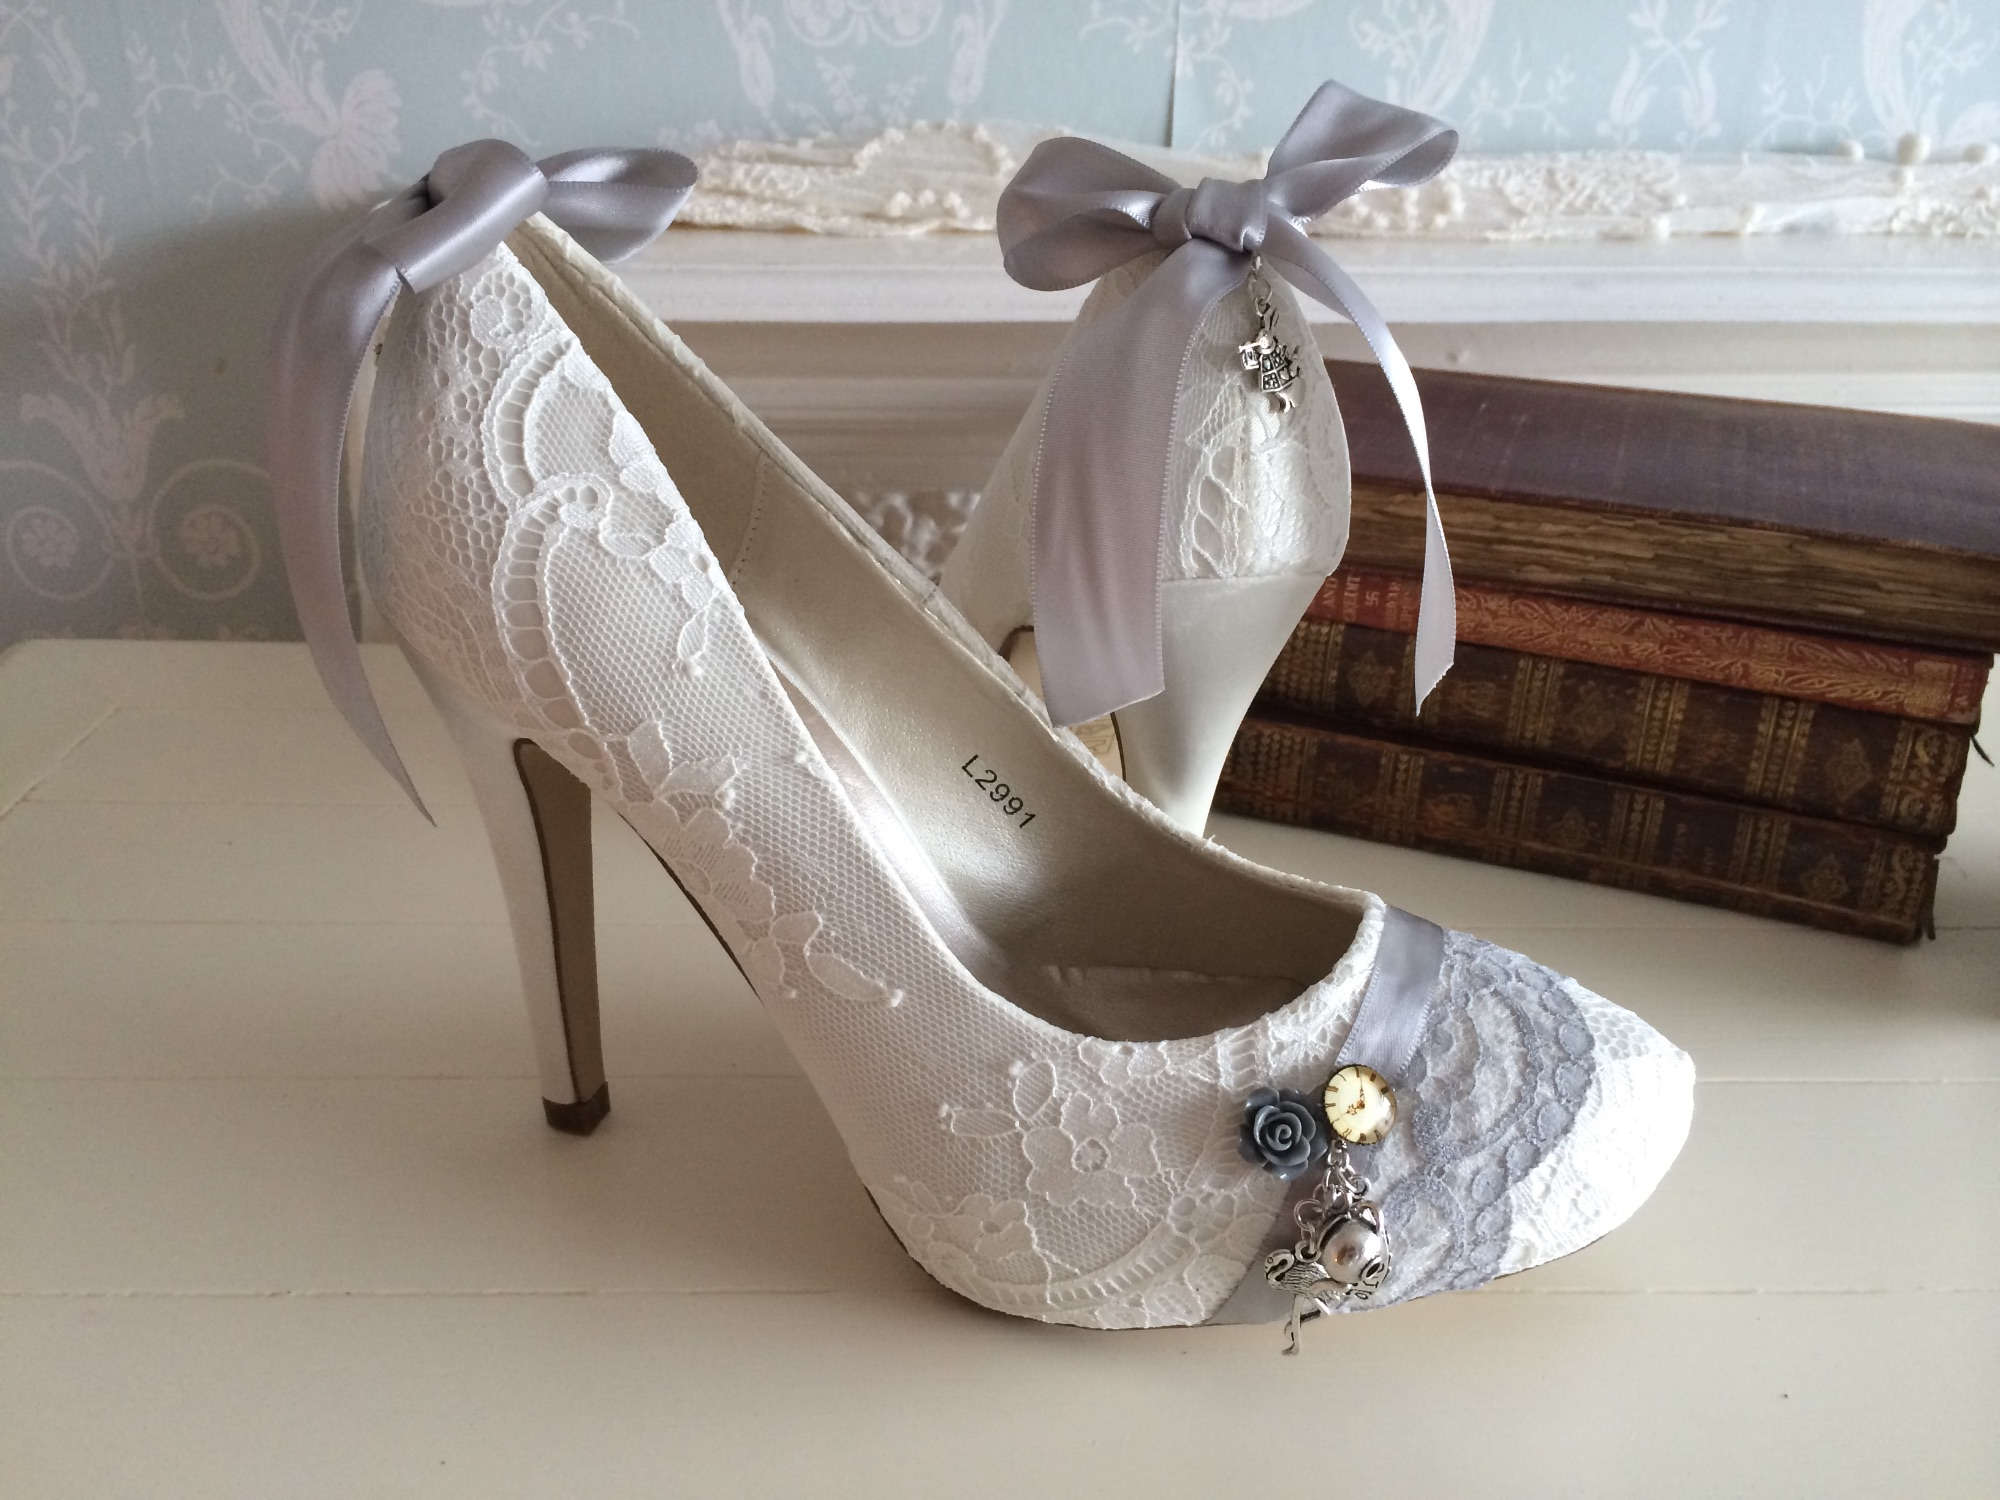 Alice in wonderland inspired shoes. Lace shoes with charms by Lace and Love